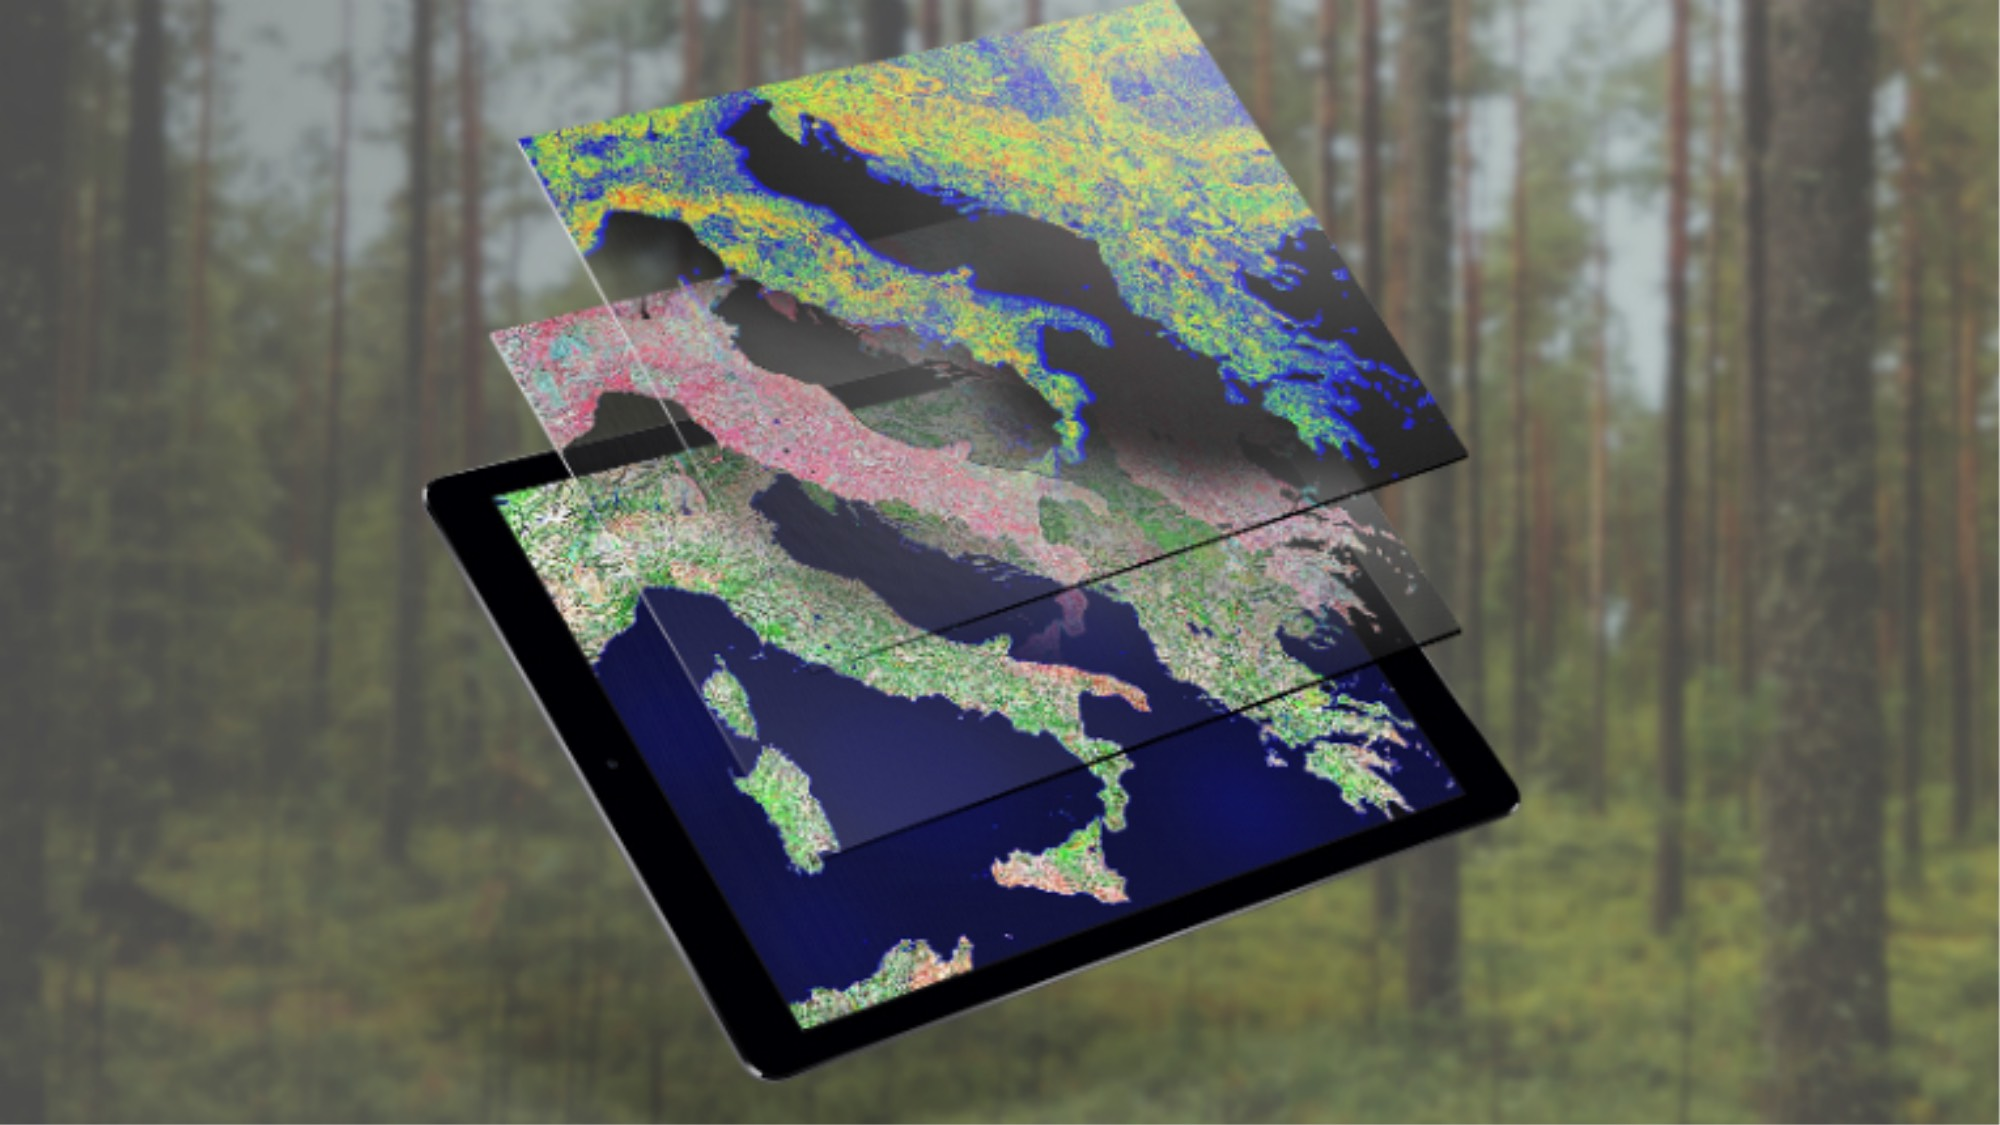 An tablet with space imagery set against a forest background